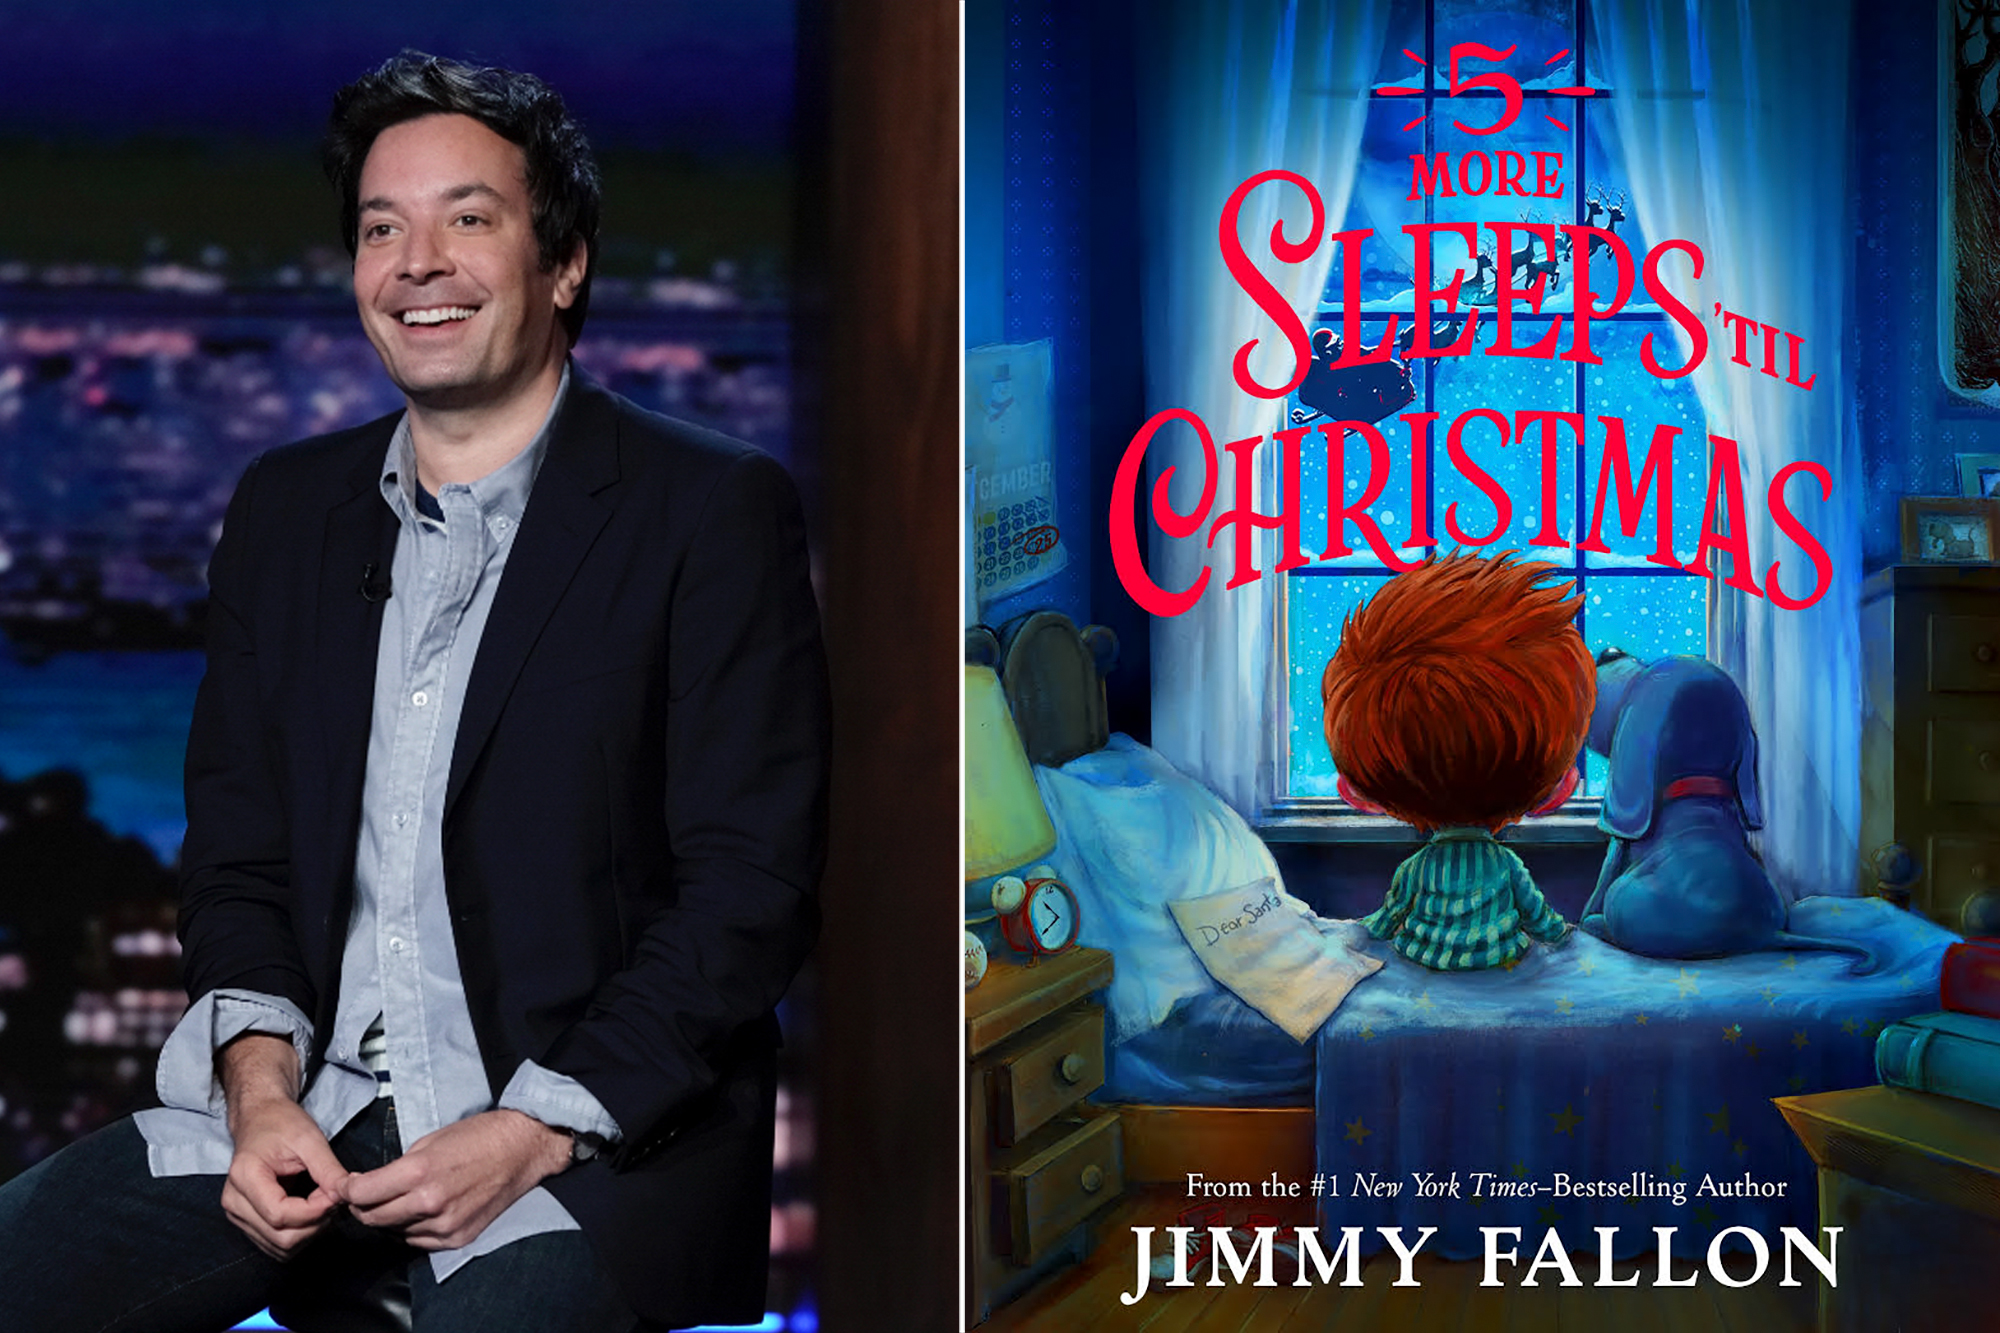 Jimmy Fallon, 5 More Sleeps 'til Christmas